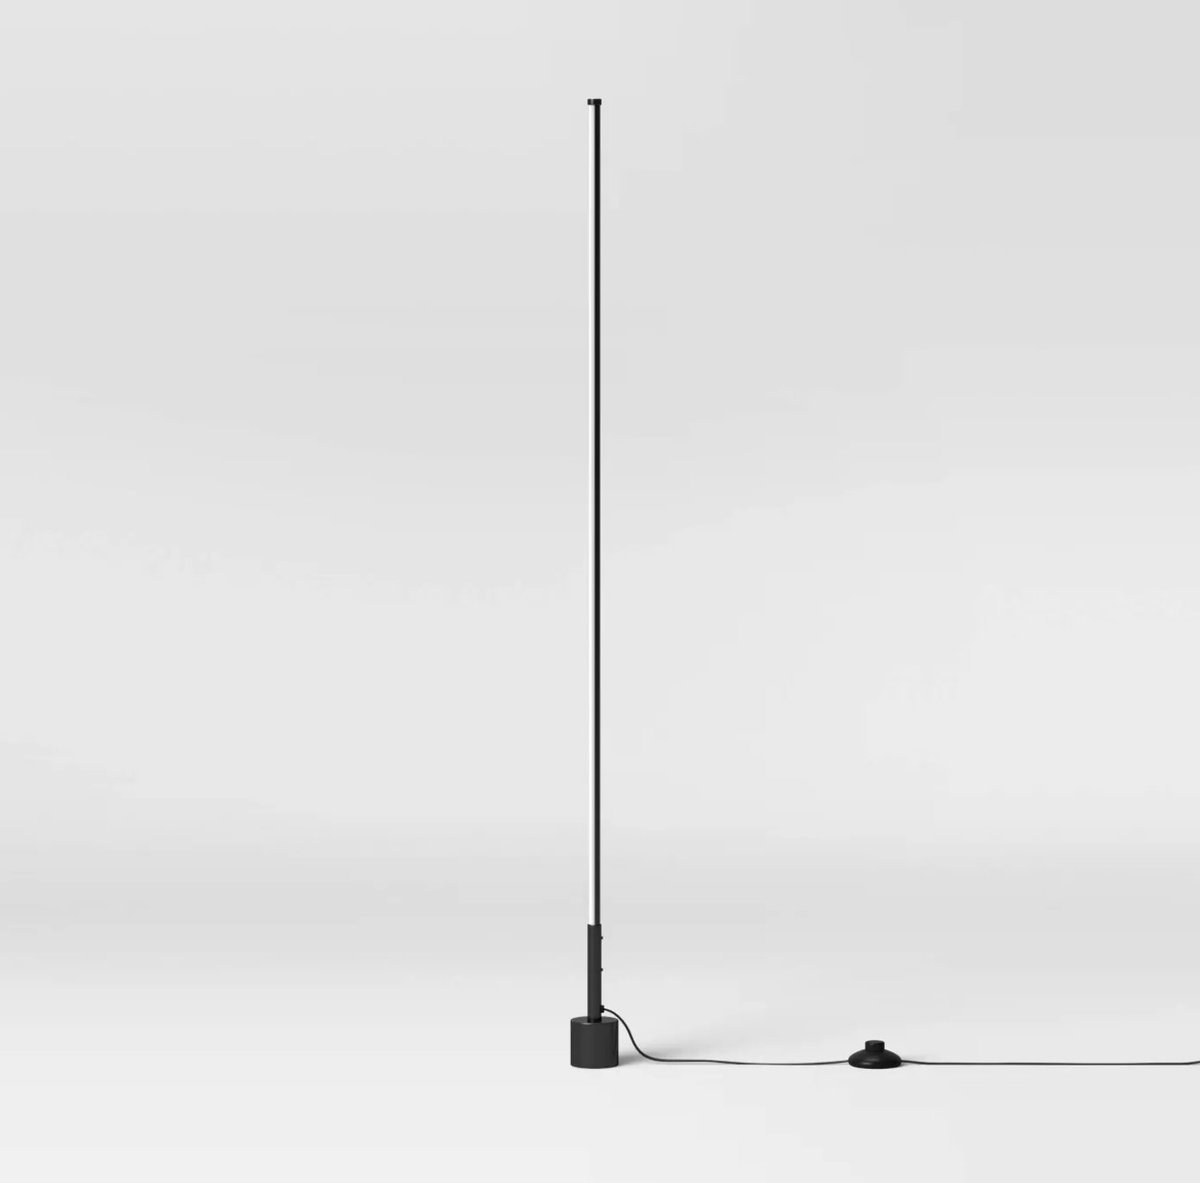 #designoftheday This Project 62 floor lamp from Target is a chic minimalist design that looks as though it's straight out of the1960's. An integrated LED runs up the slender stick-like column casting an inviting glow. It all but disappears in a room. $39! https://t.co/6djkHO7AST https://t.co/Sjg35F0X2K